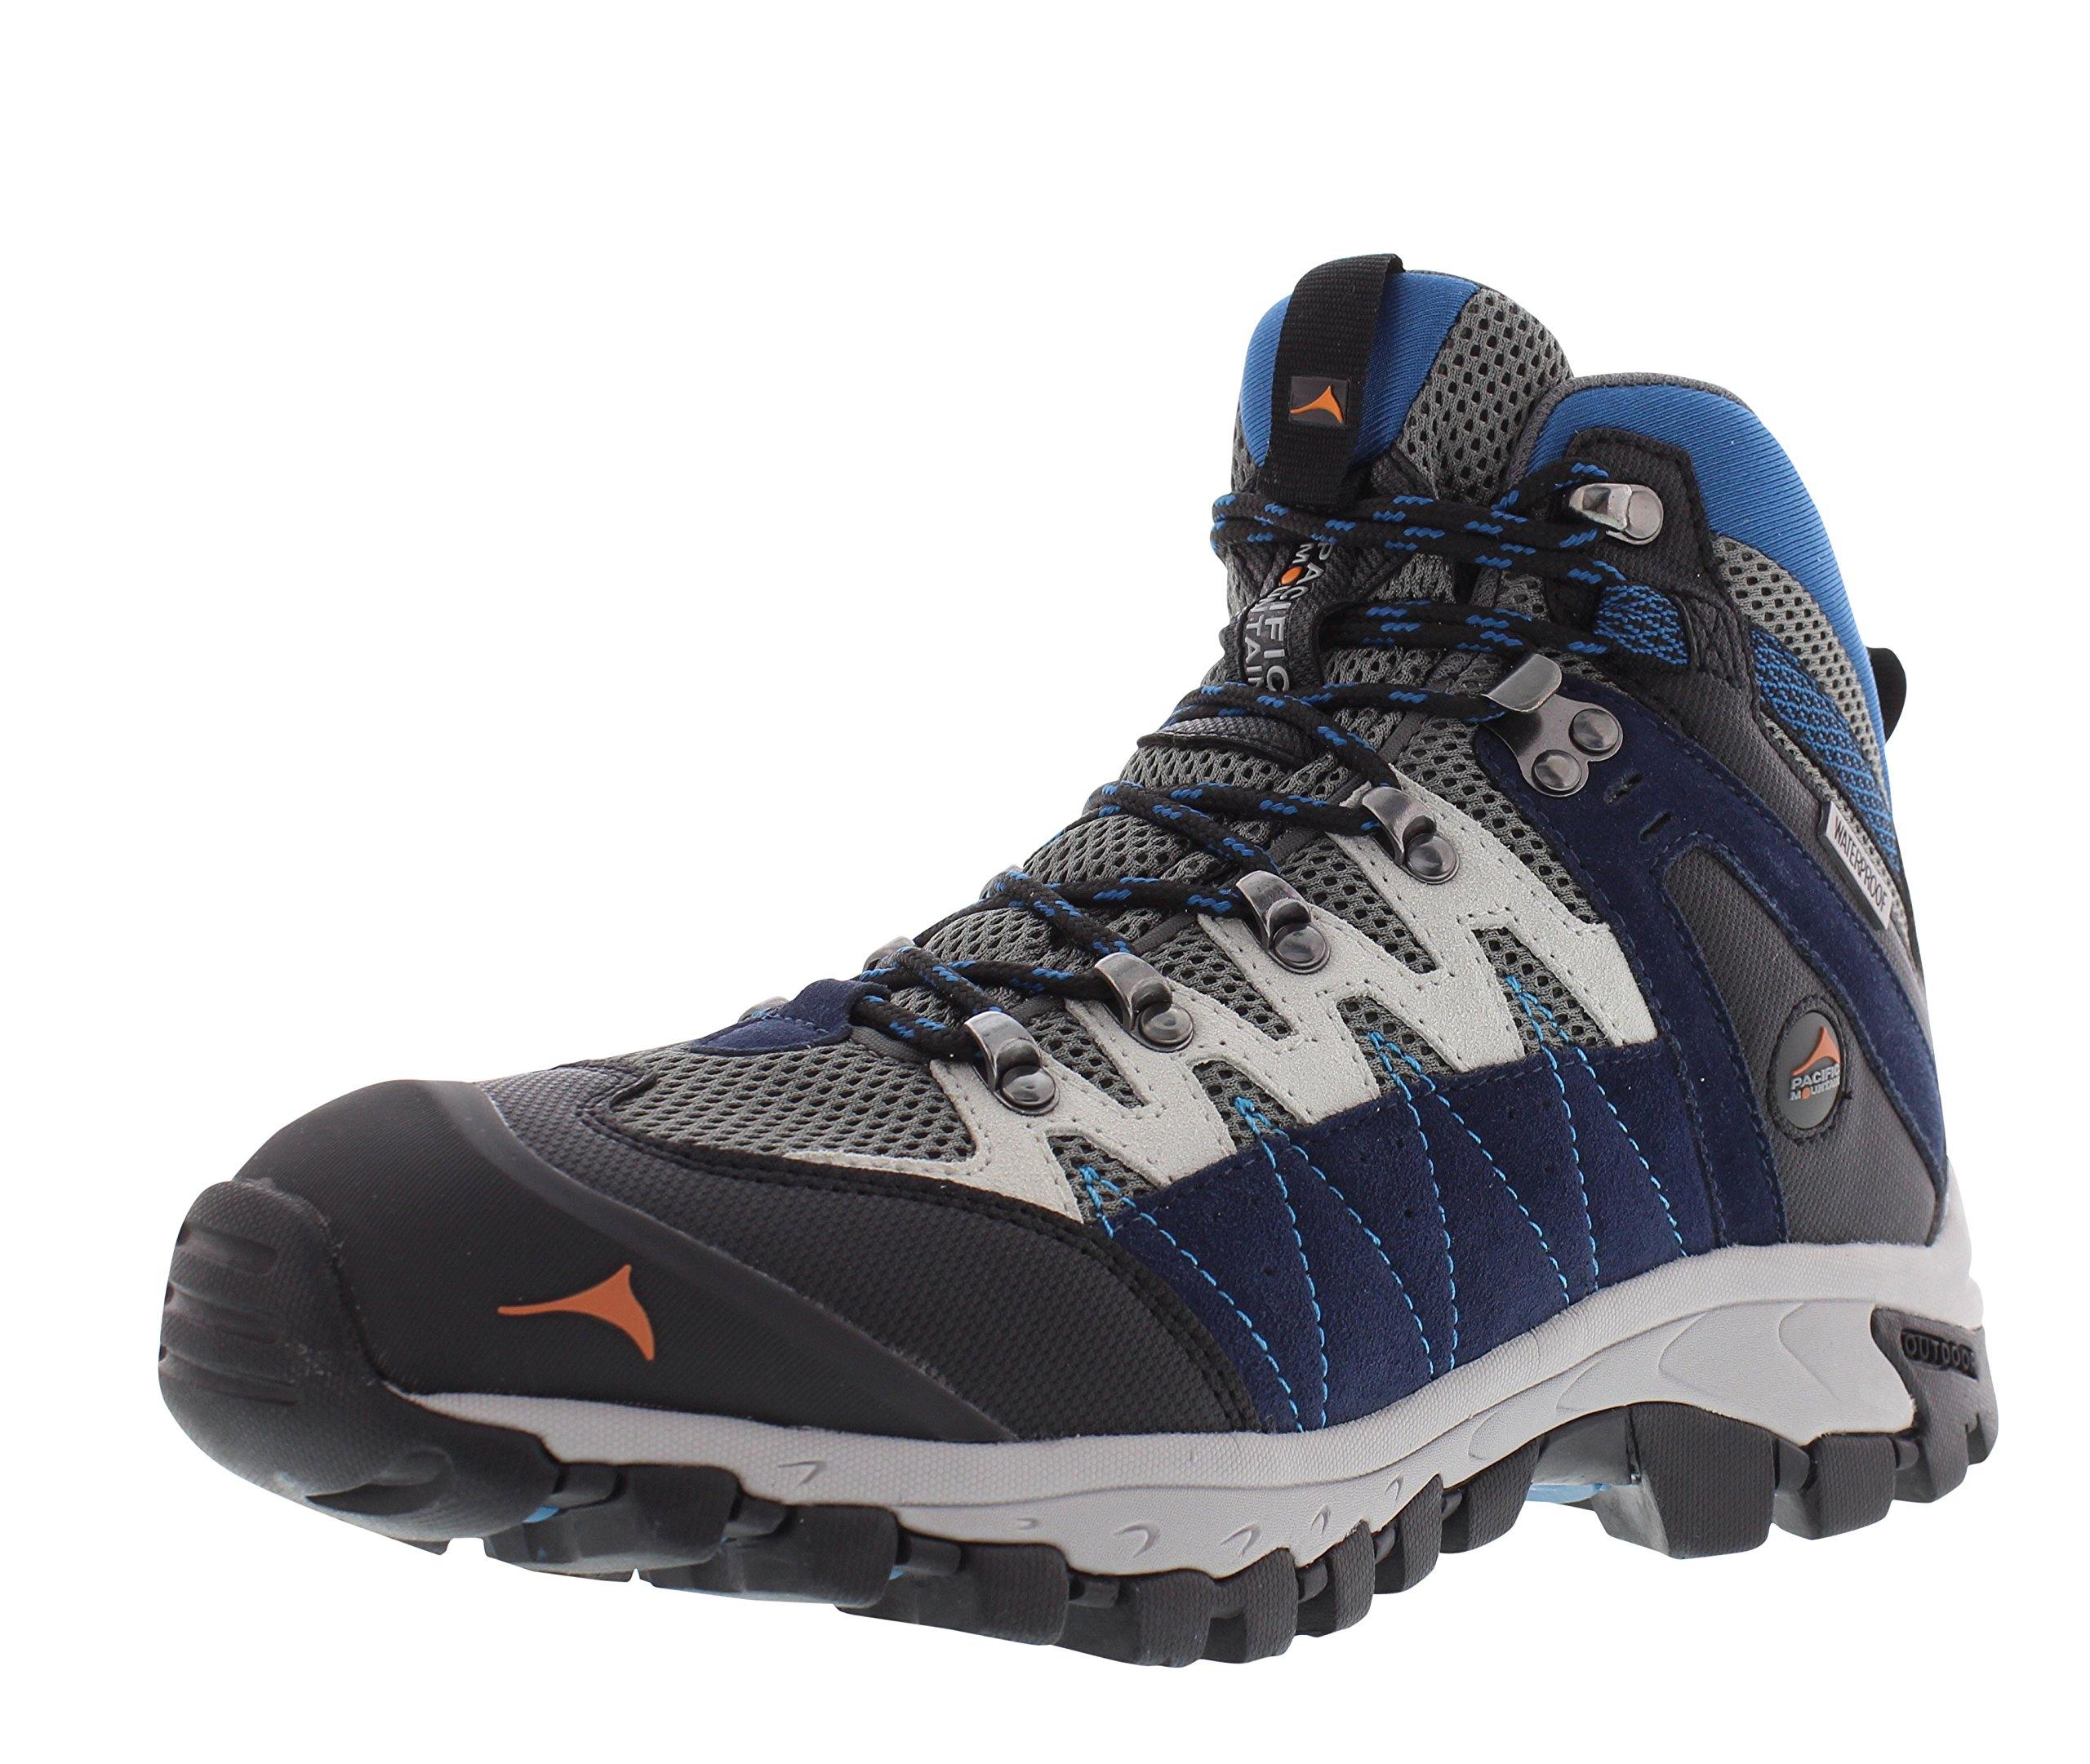 Pacific Mountain Descend Men's Waterproof Hiking Backpacking Mid-Cut Navy/Black/Blue Boots Size 13 by Pacific Mountain